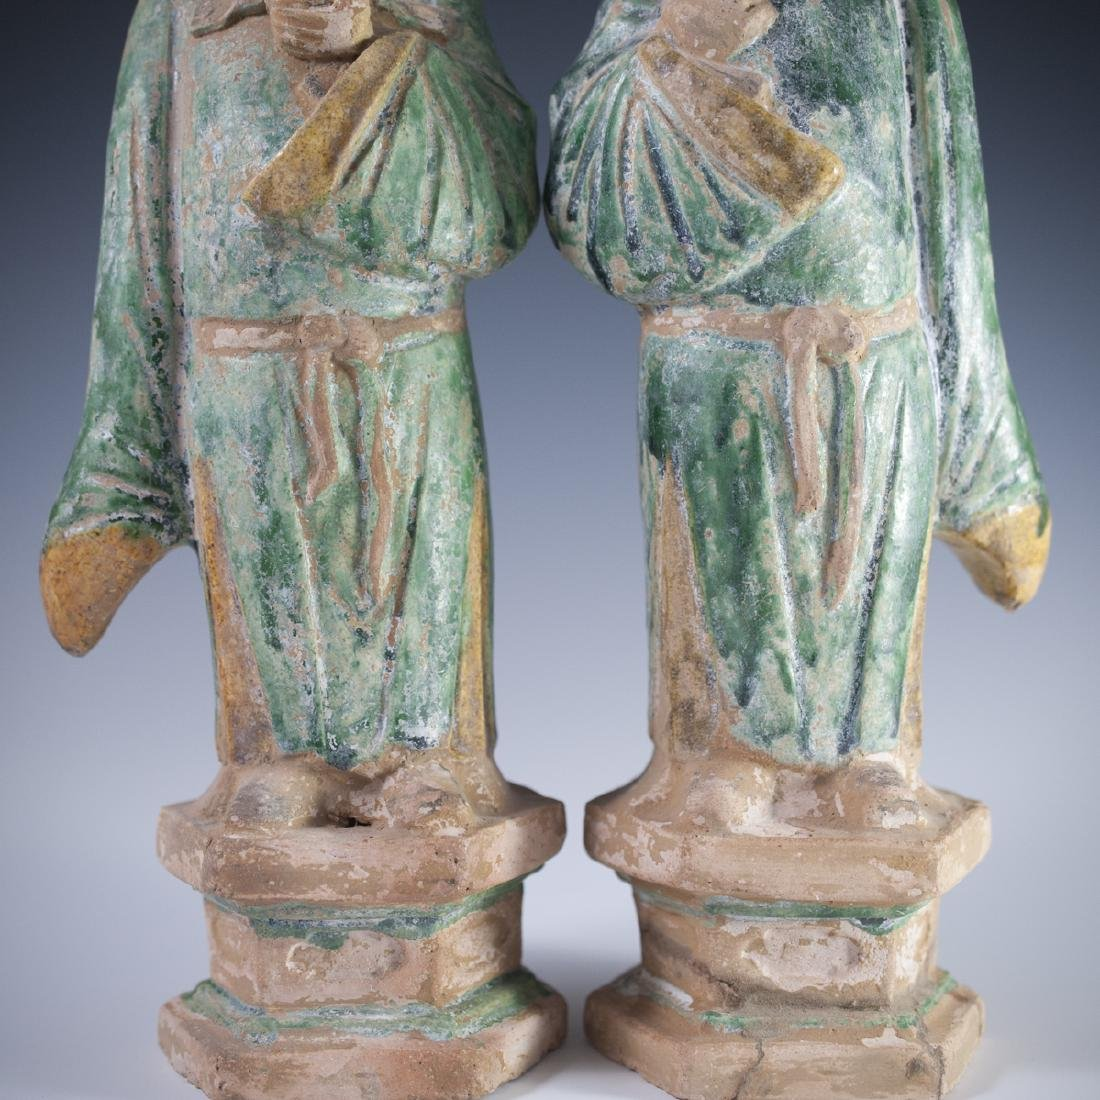 Ming Dynasty Pottery Sculptures - 4